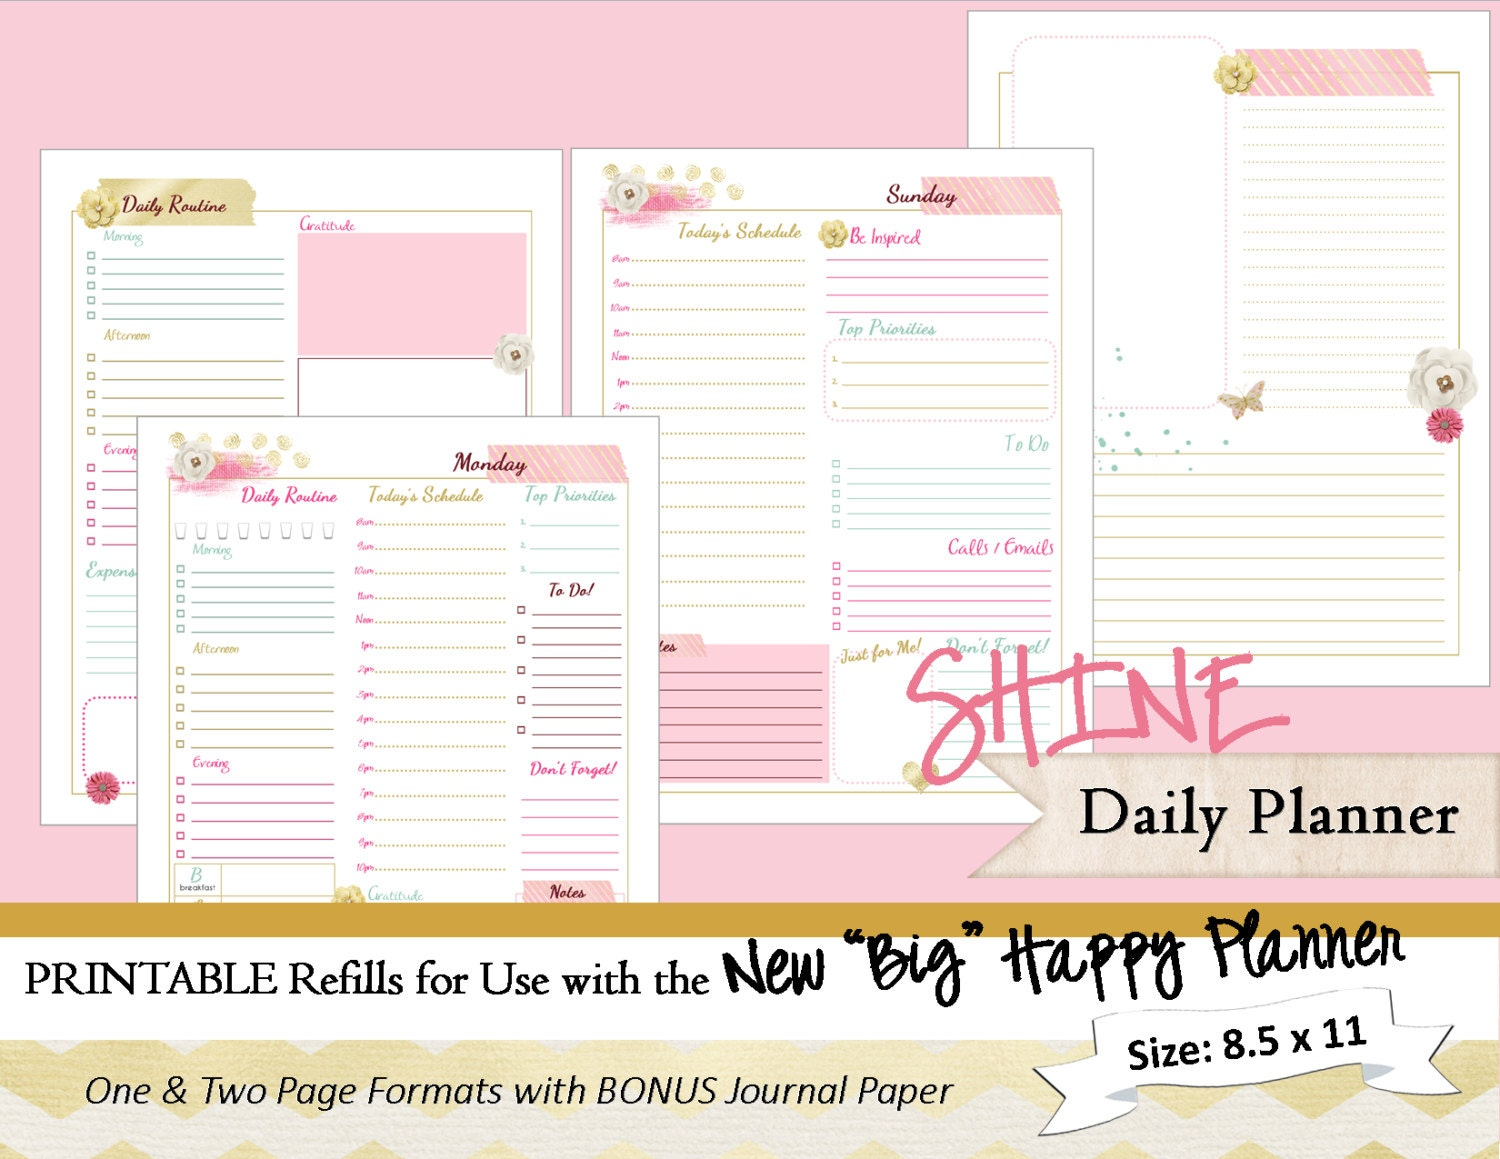 Planner Calendar Inserts : Big happy planner printable daily calendar inserts refills